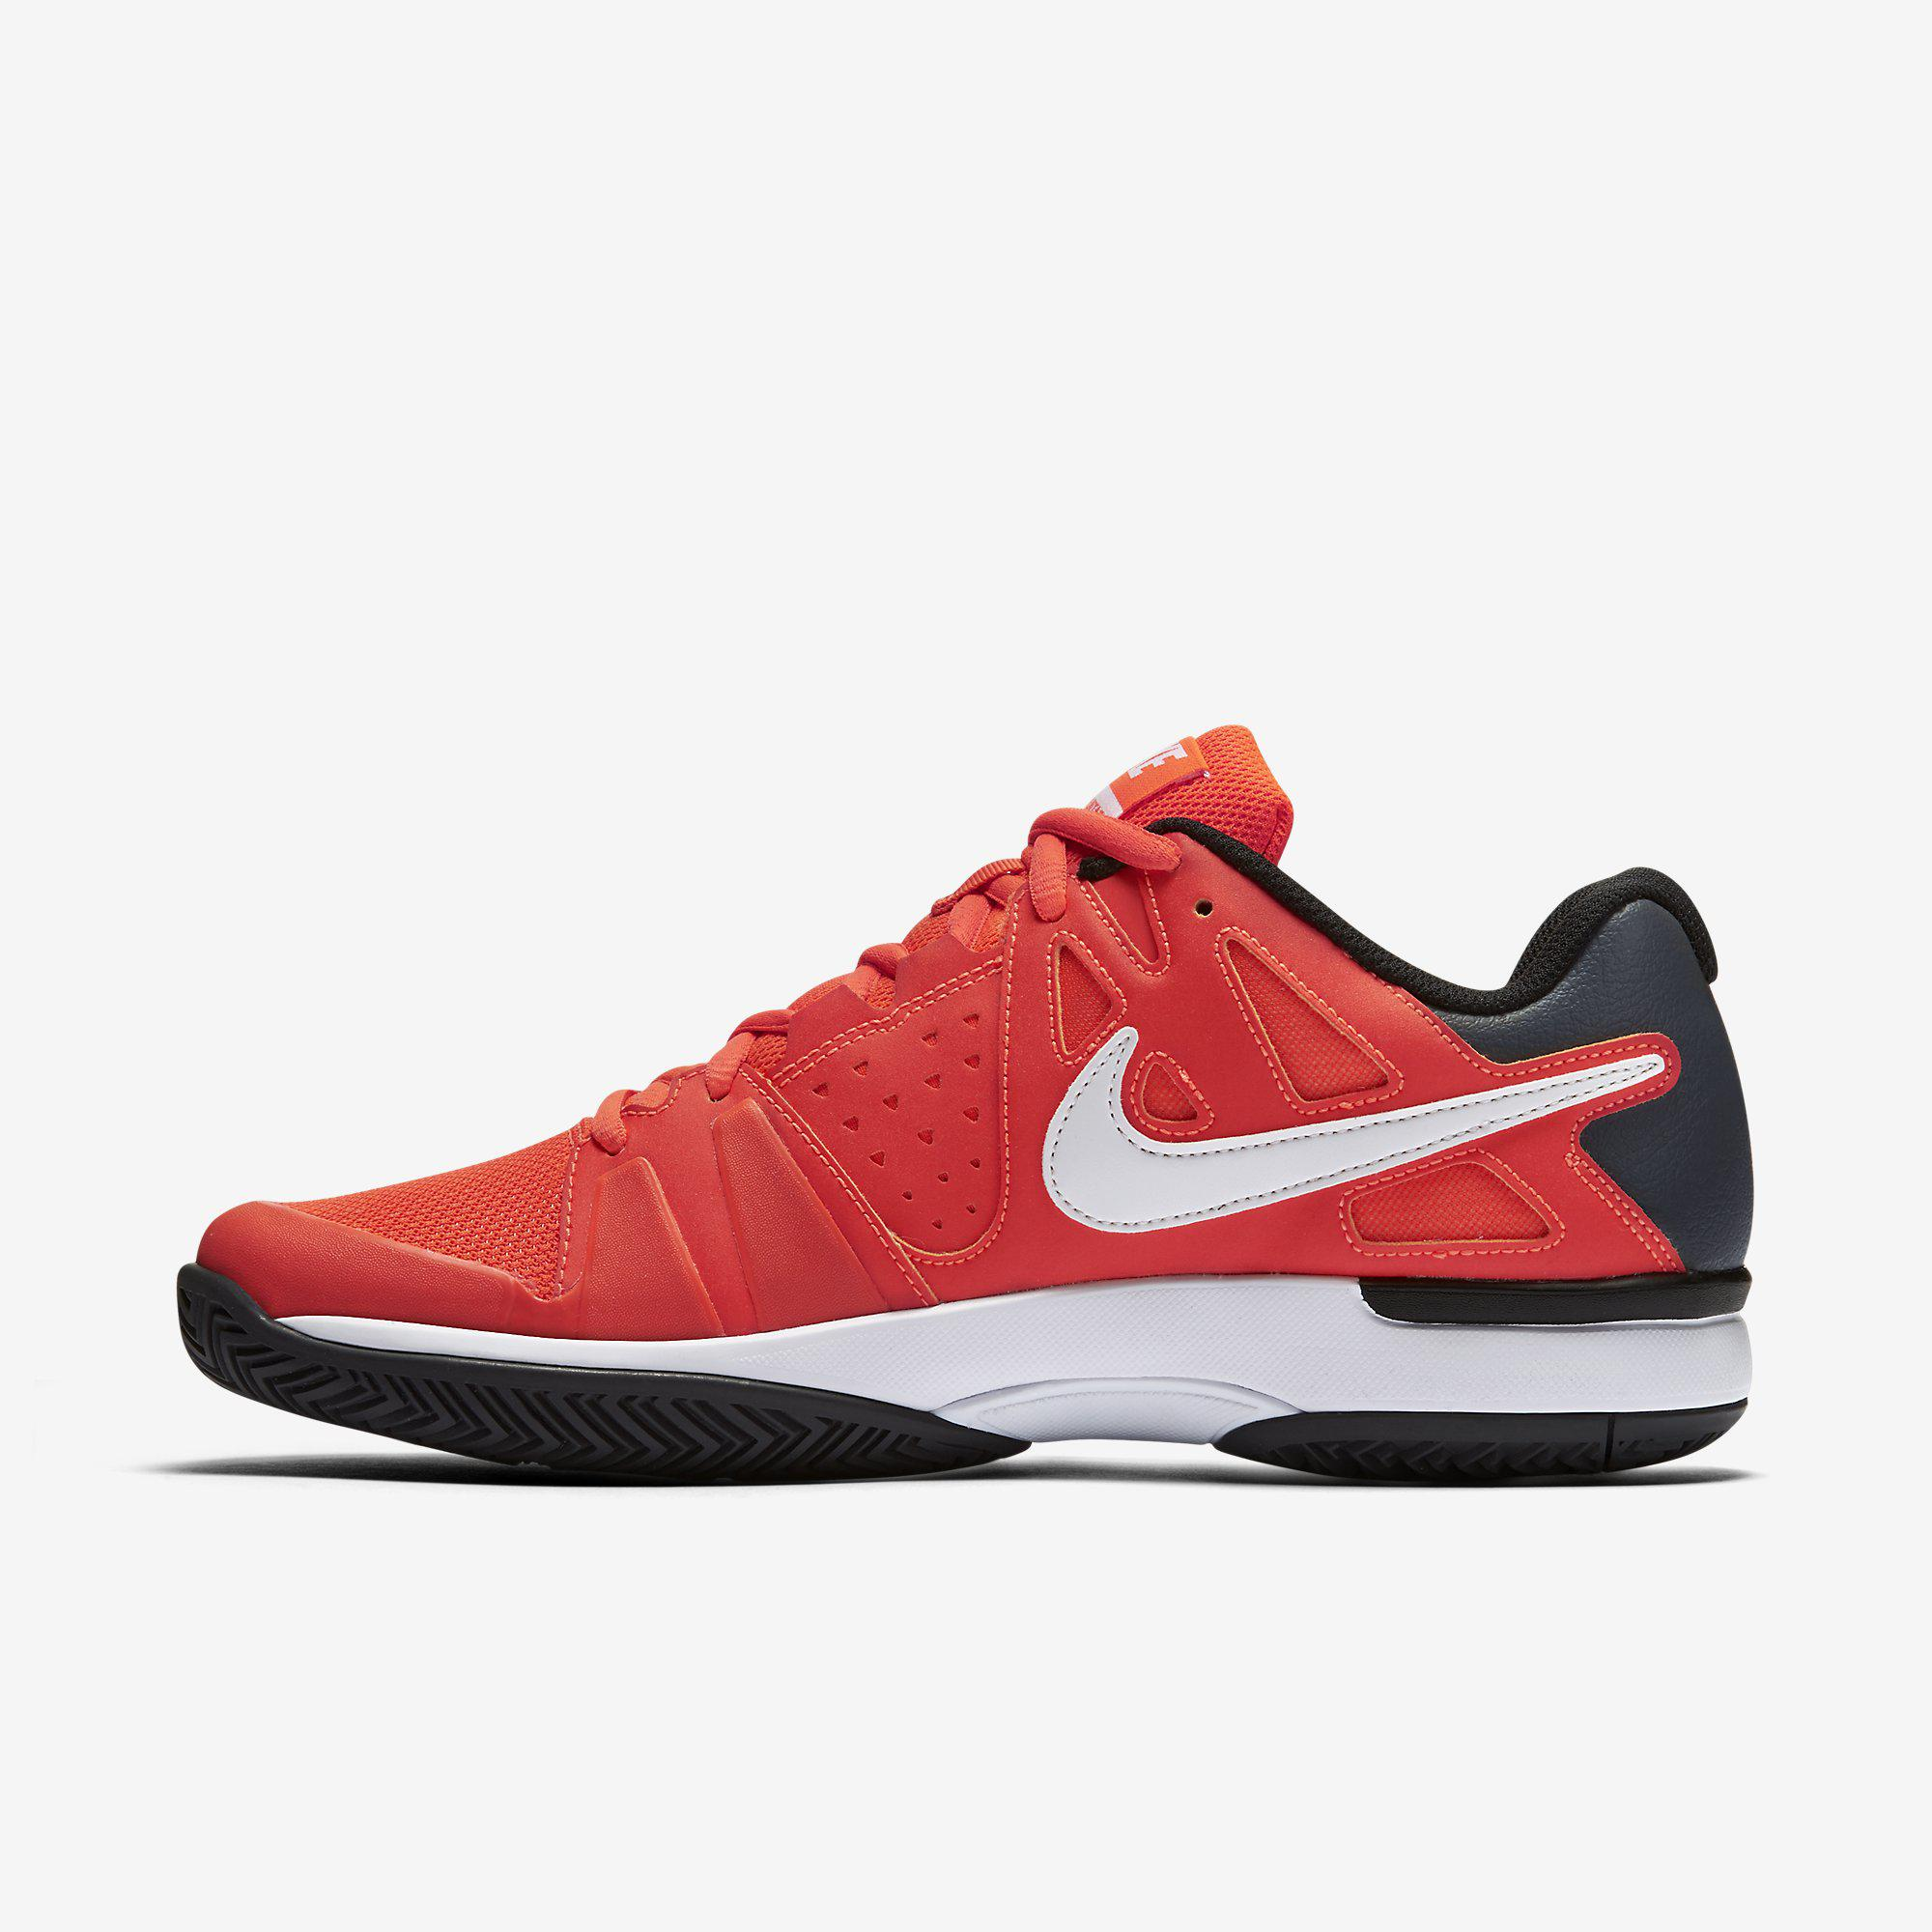 Nike Mens Air Vapor Advantage Tennis Shoes - Orange/Black